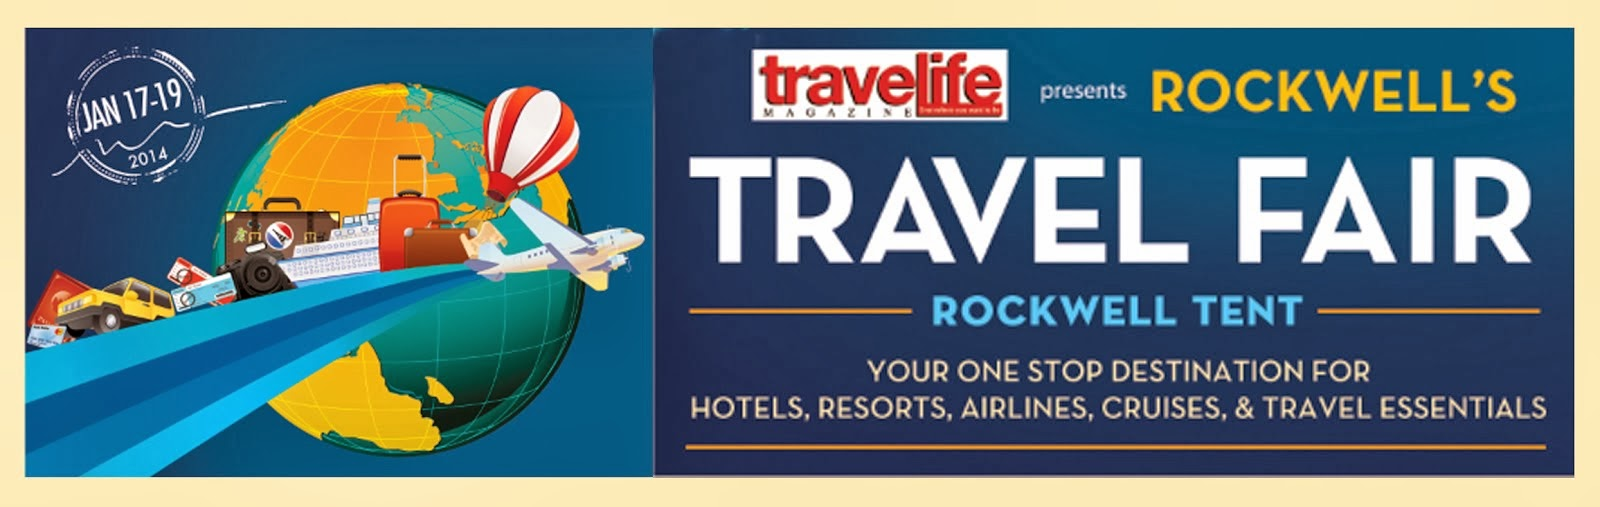 Rockwell Travel Fair